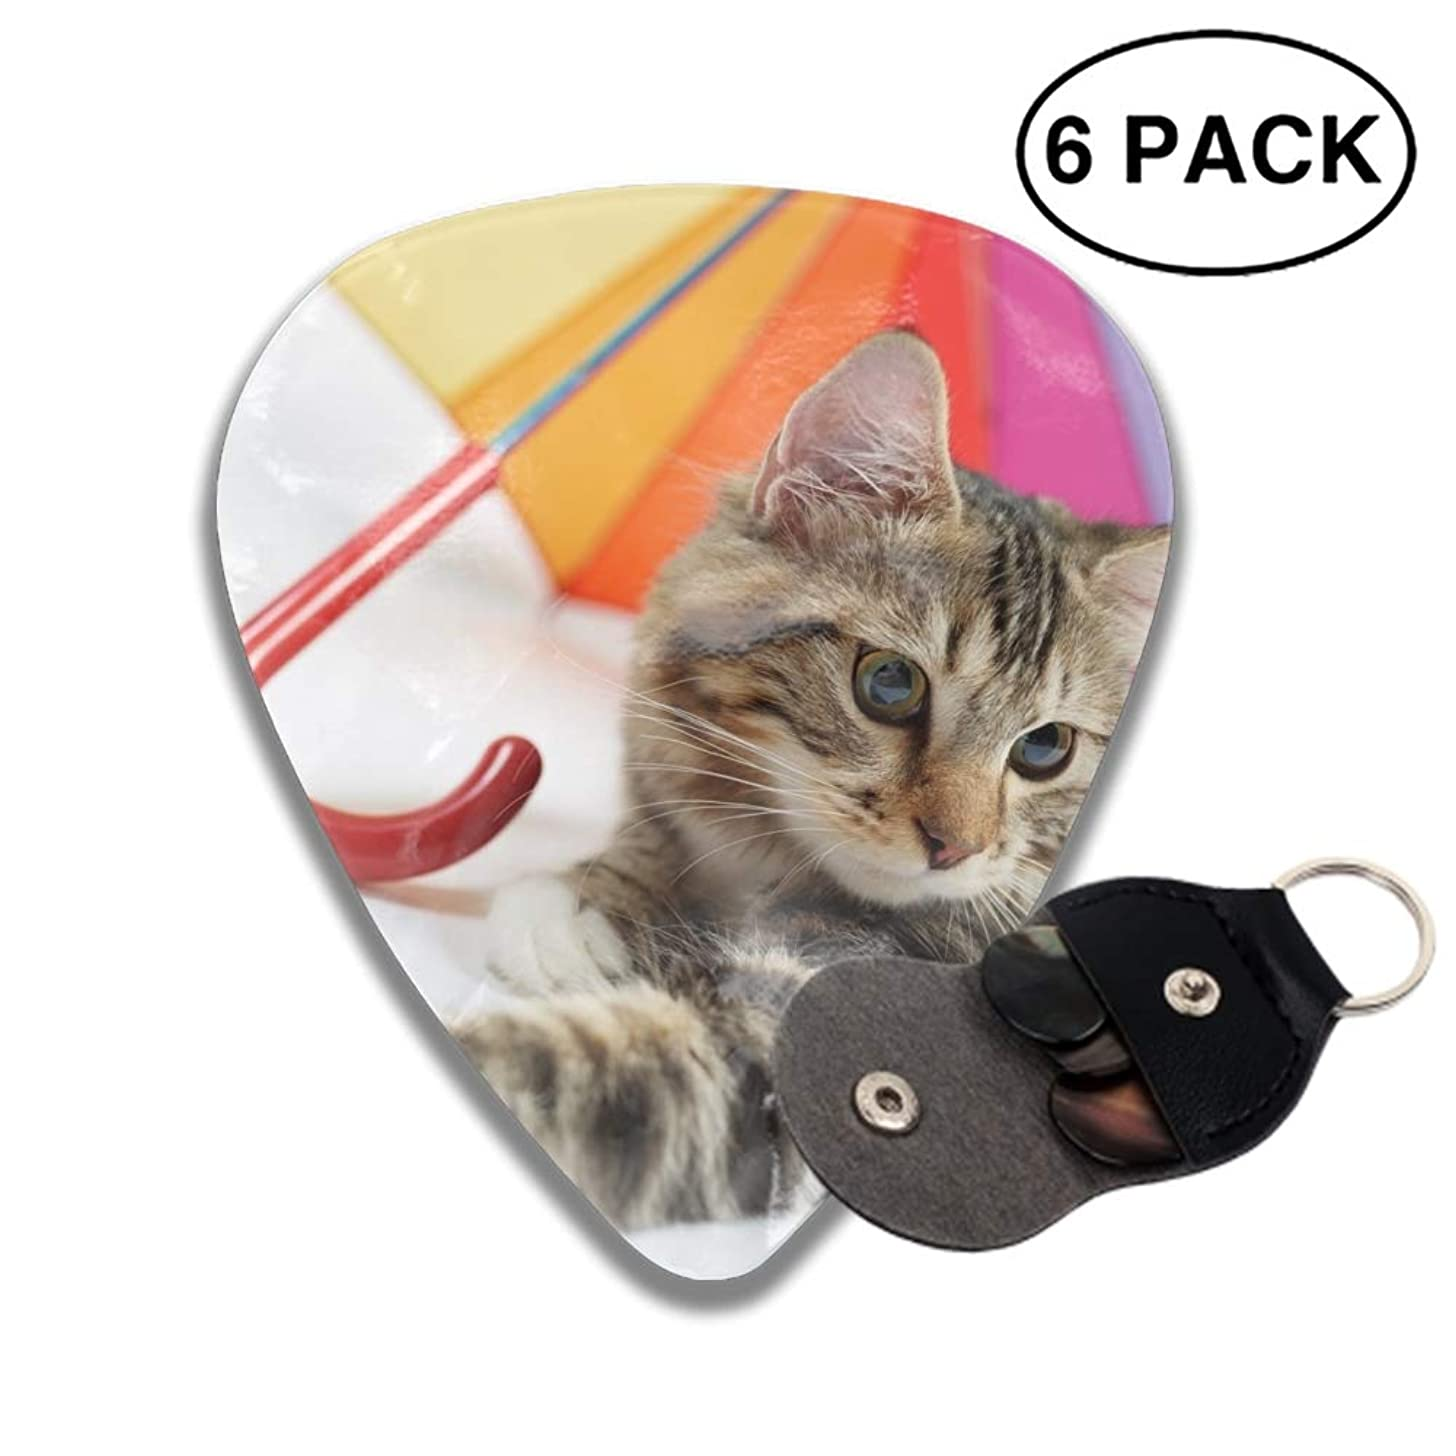 Celluloid Guitar Picks 3D Printed Animal Cats Umbrella Best Guitar Bass Gift For gril